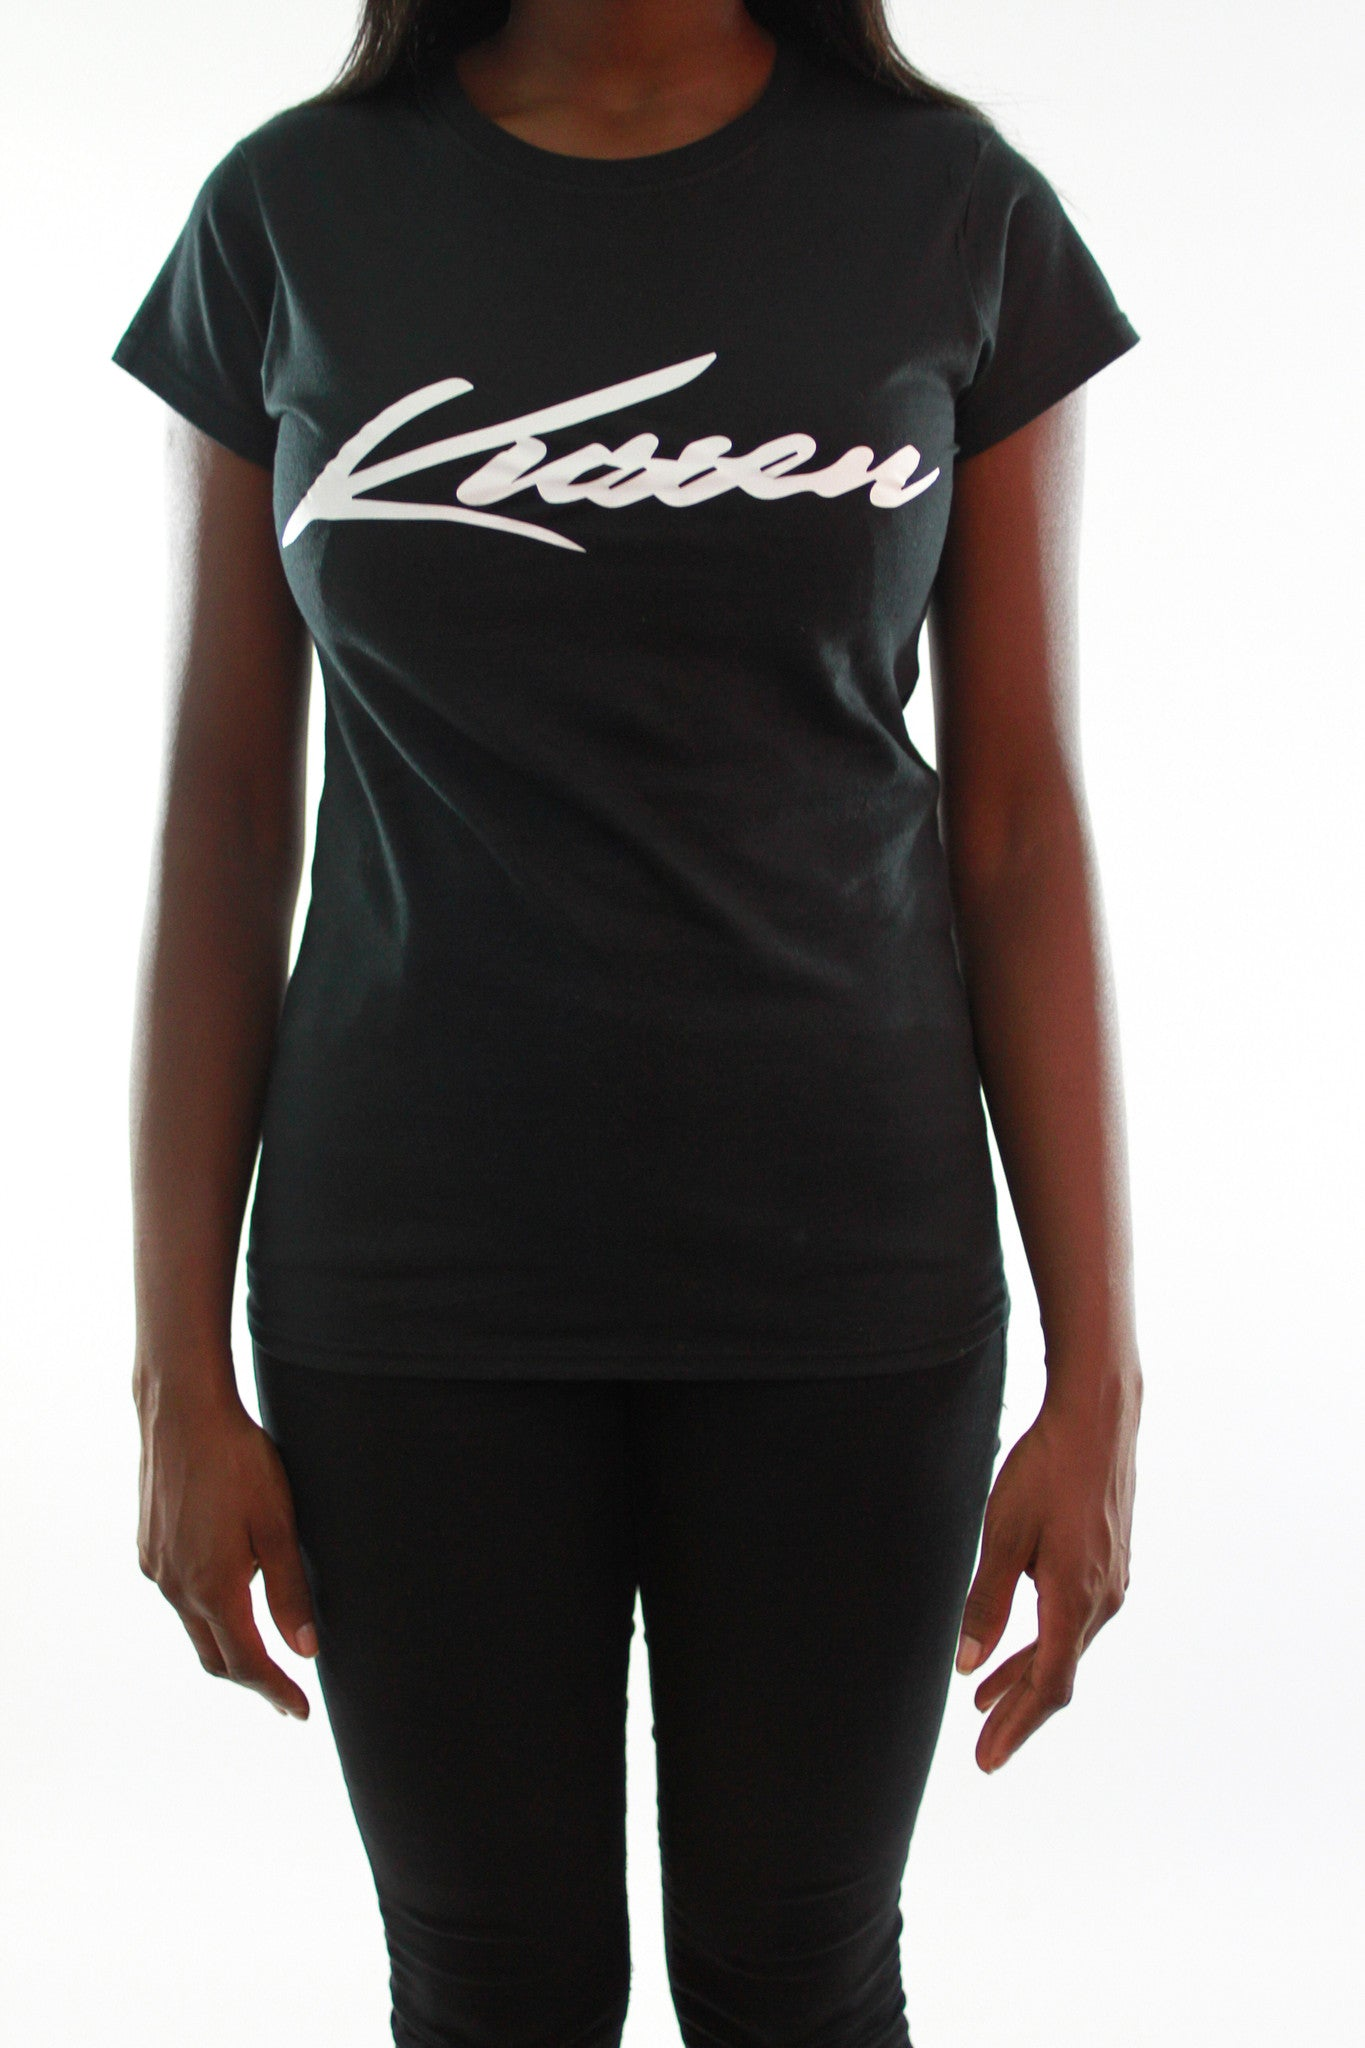 KUSSEN FITTED FEMALE SIGNATURE BLACK/WHITE T-SHIRT